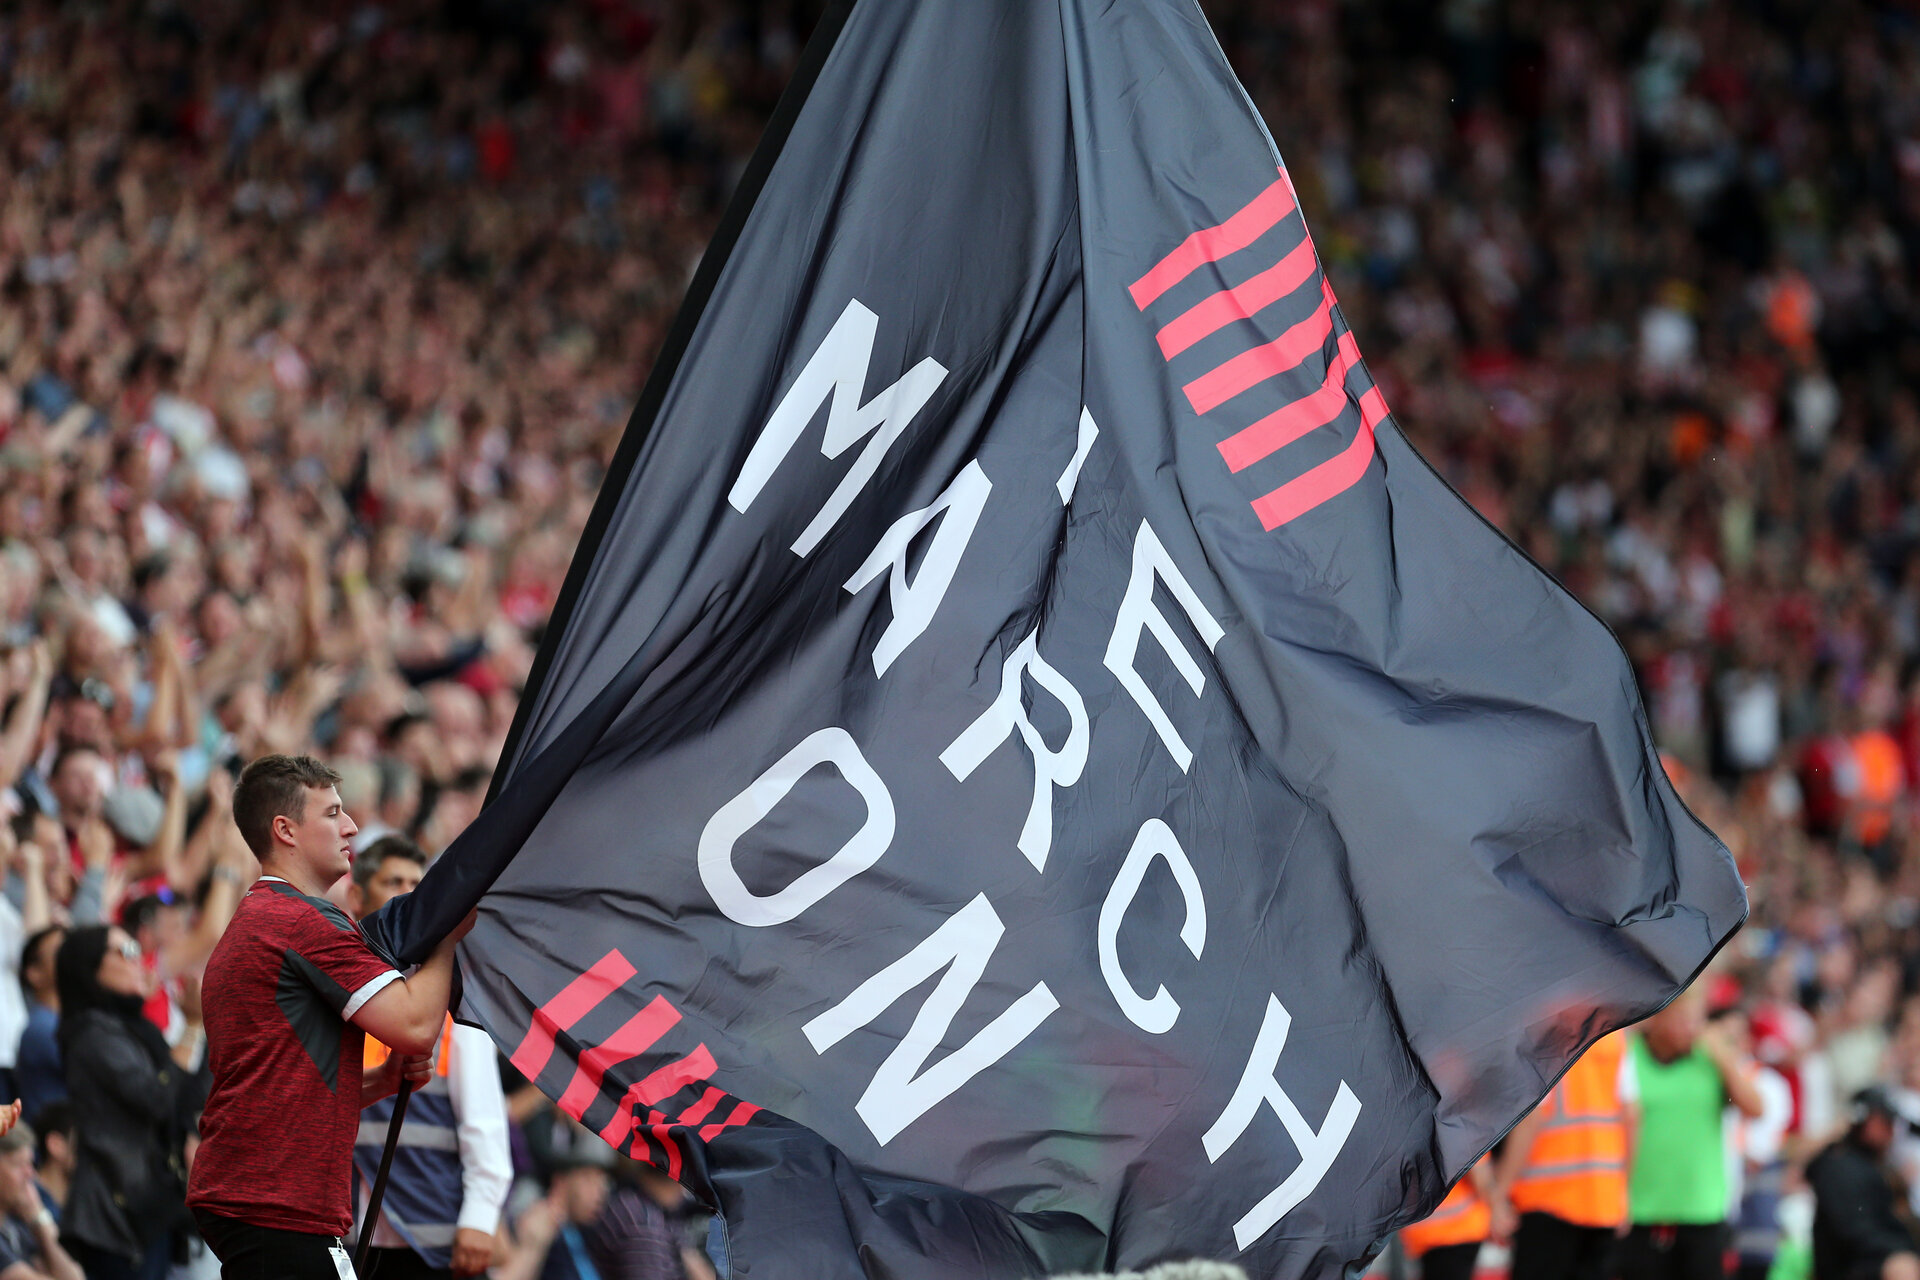 SOUTHAMPTON, ENGLAND - AUGUST 31: We March On during the Premier League match between Southampton FC and Manchester United at St Mary's Stadium on August 31, 2019 in Southampton, United Kingdom. (Photo by Chris Moorhouse/Southampton FC via Getty Images)